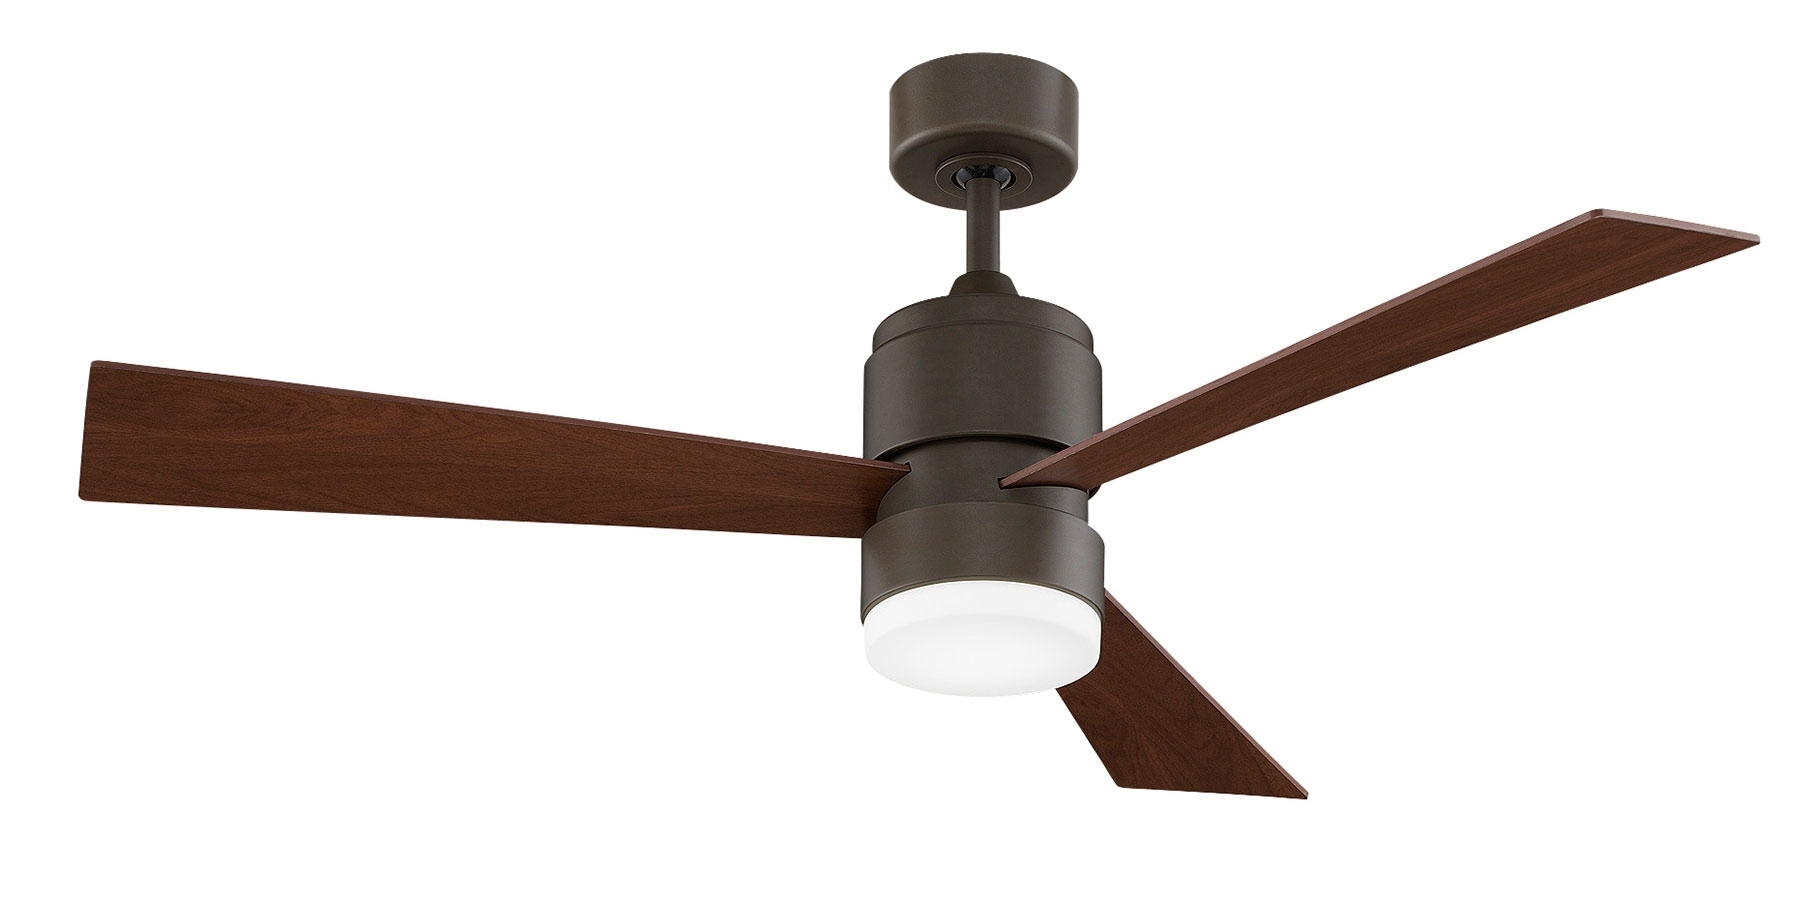 Light : Ceiling Fans With Led Lights Zonix Fan Havells Areole Blade Throughout Famous Outdoor Ceiling Fans With Led Lights (View 12 of 20)